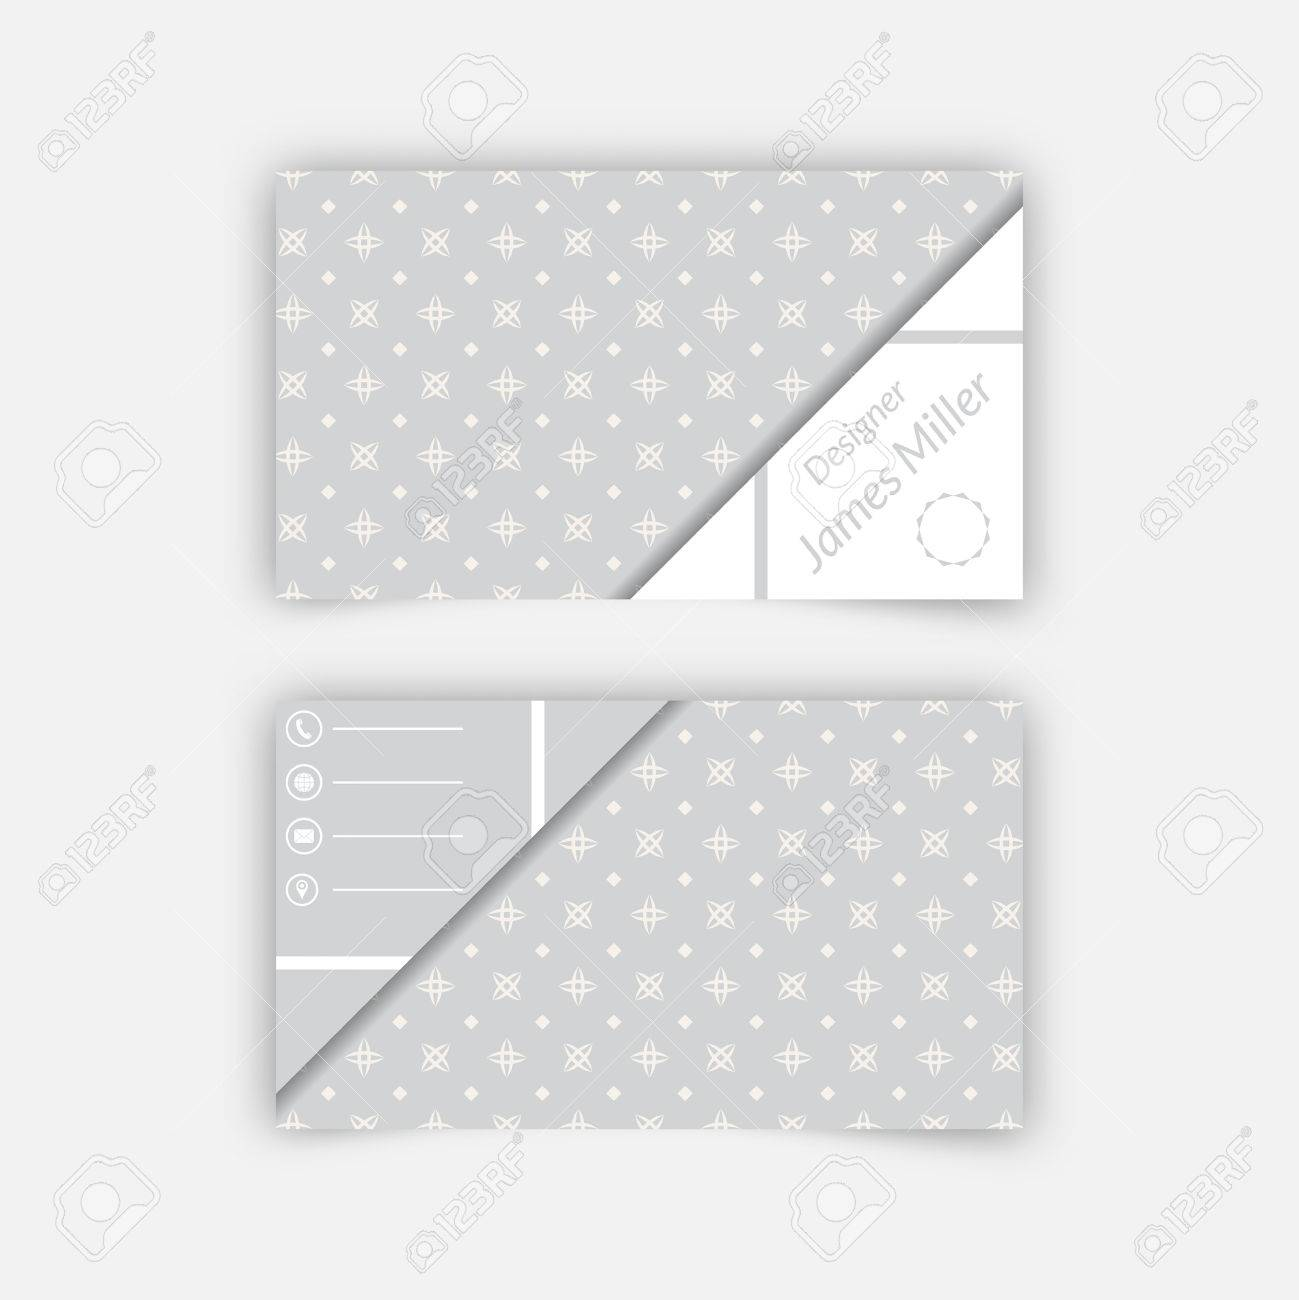 Business card blank template with textured background from stars business card blank template with textured background from stars rhombuses and triangle shape minimal reheart Images